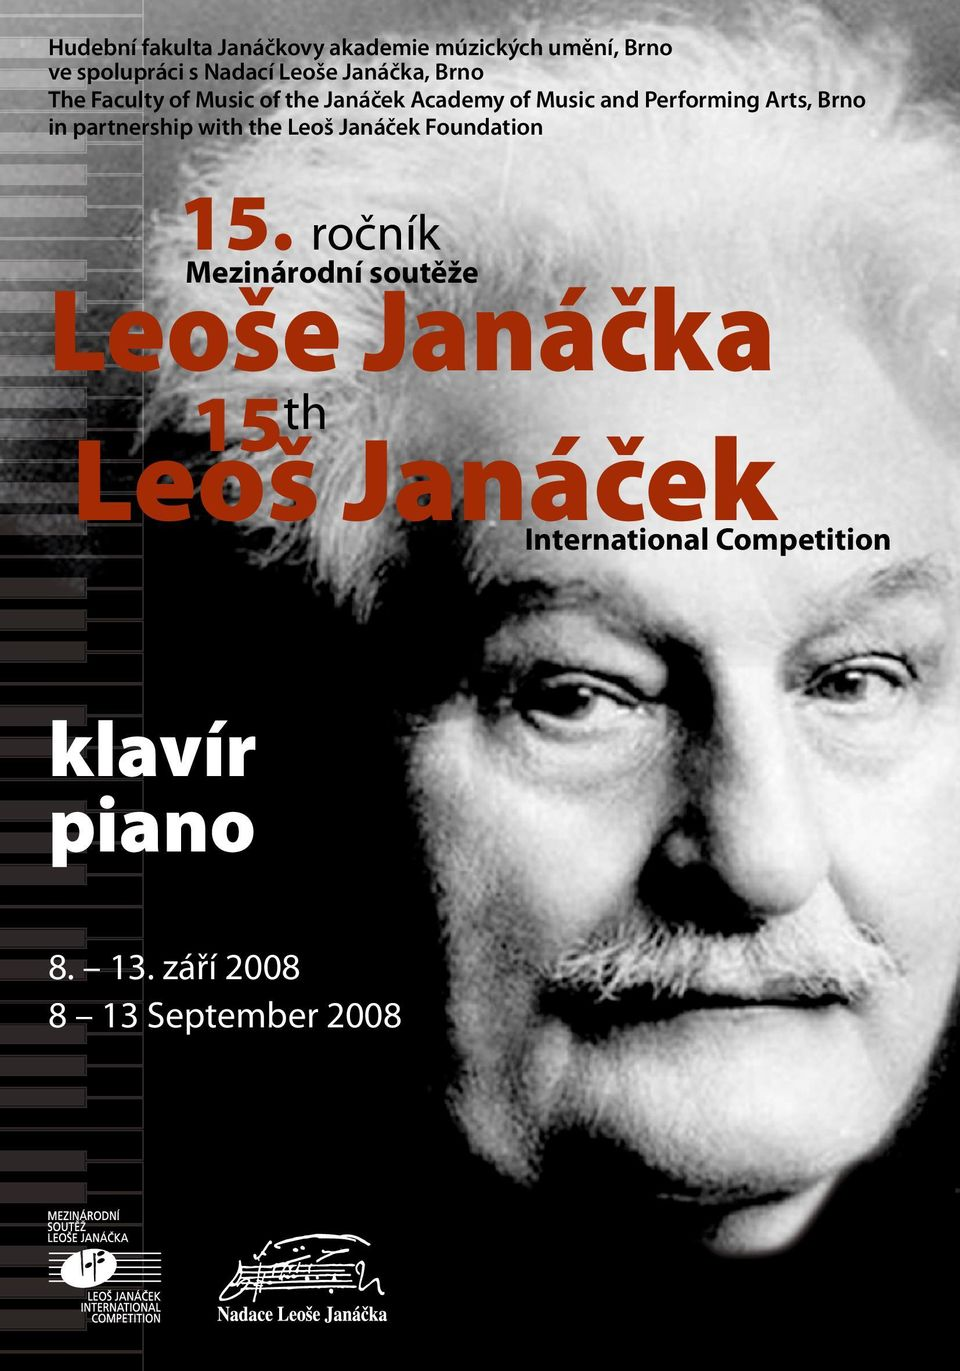 Brno in partnership with the Leoš Janáček Foundation 15.